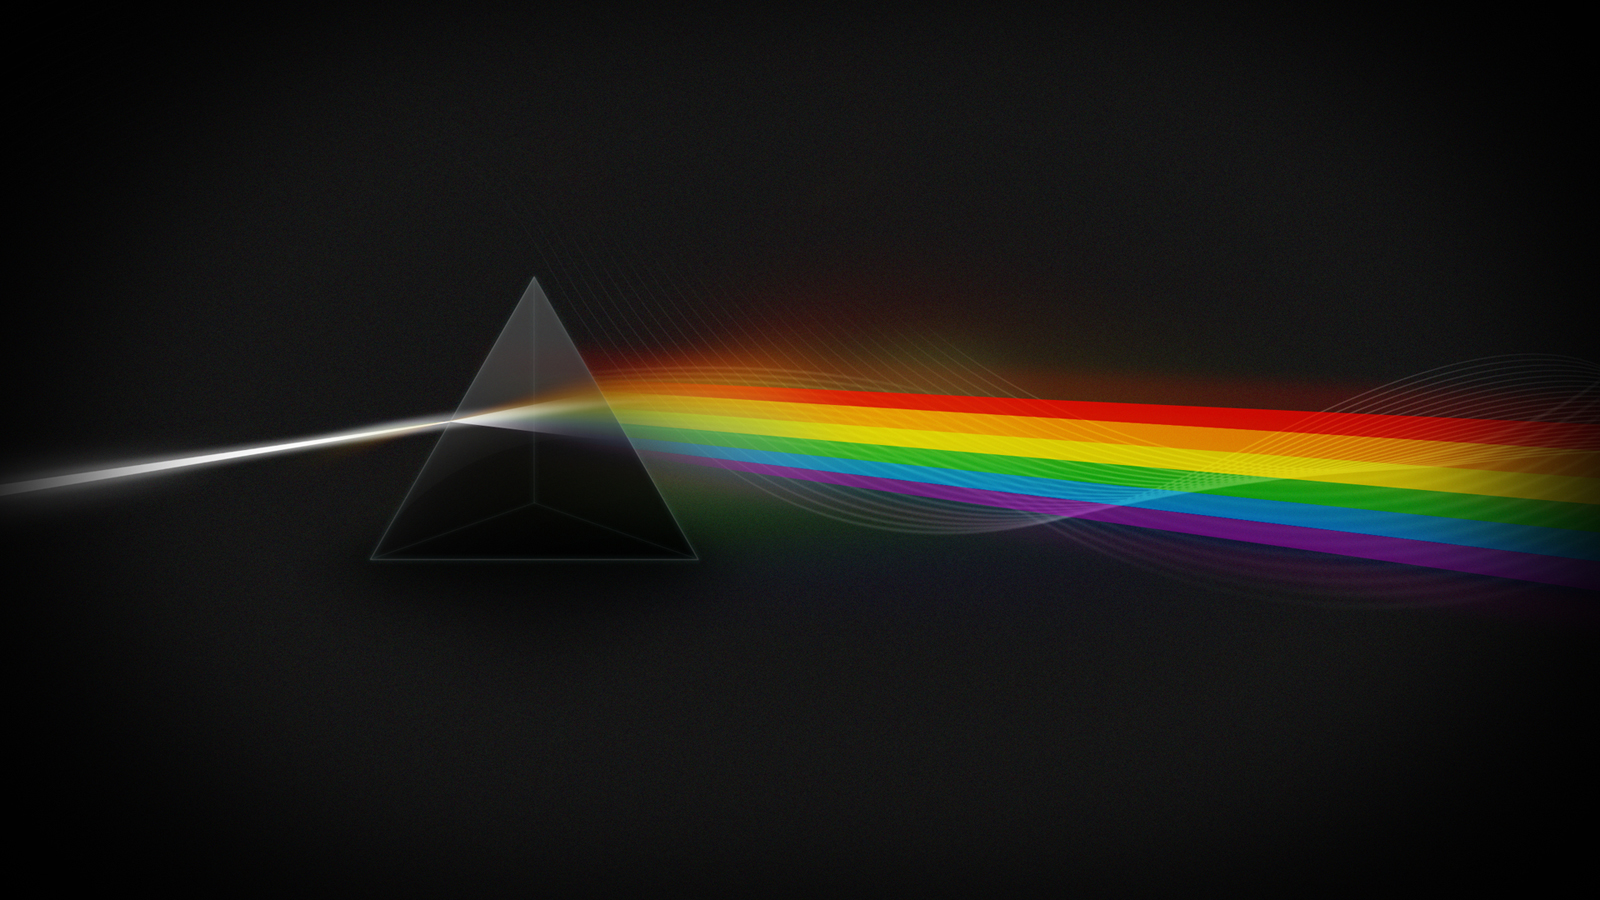 pink floyd the dark side of the moon light spectrum 1600900 1600x900